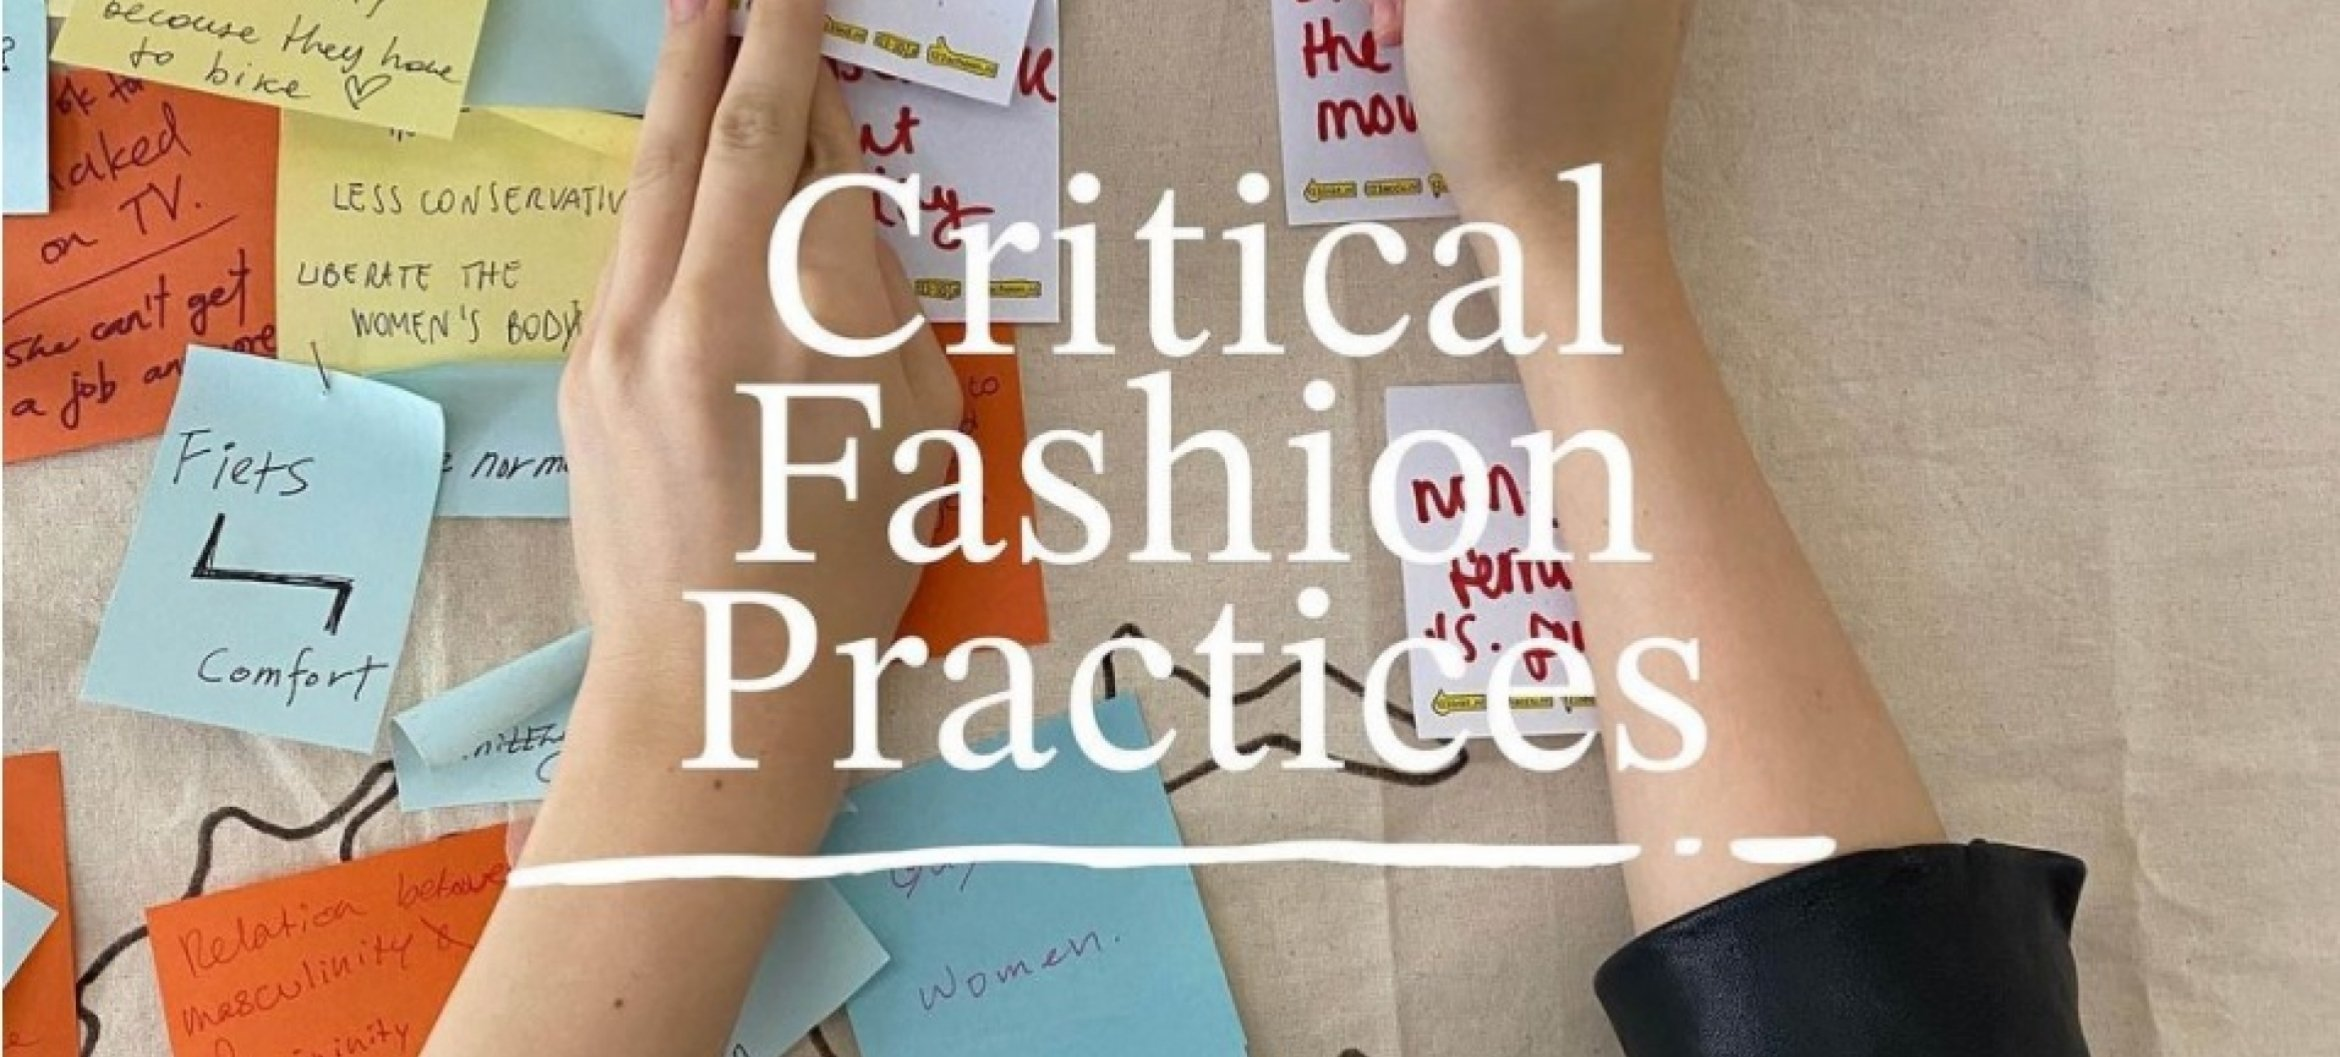 Master Fashion Strategy continues as Master Critical Fashion Practices